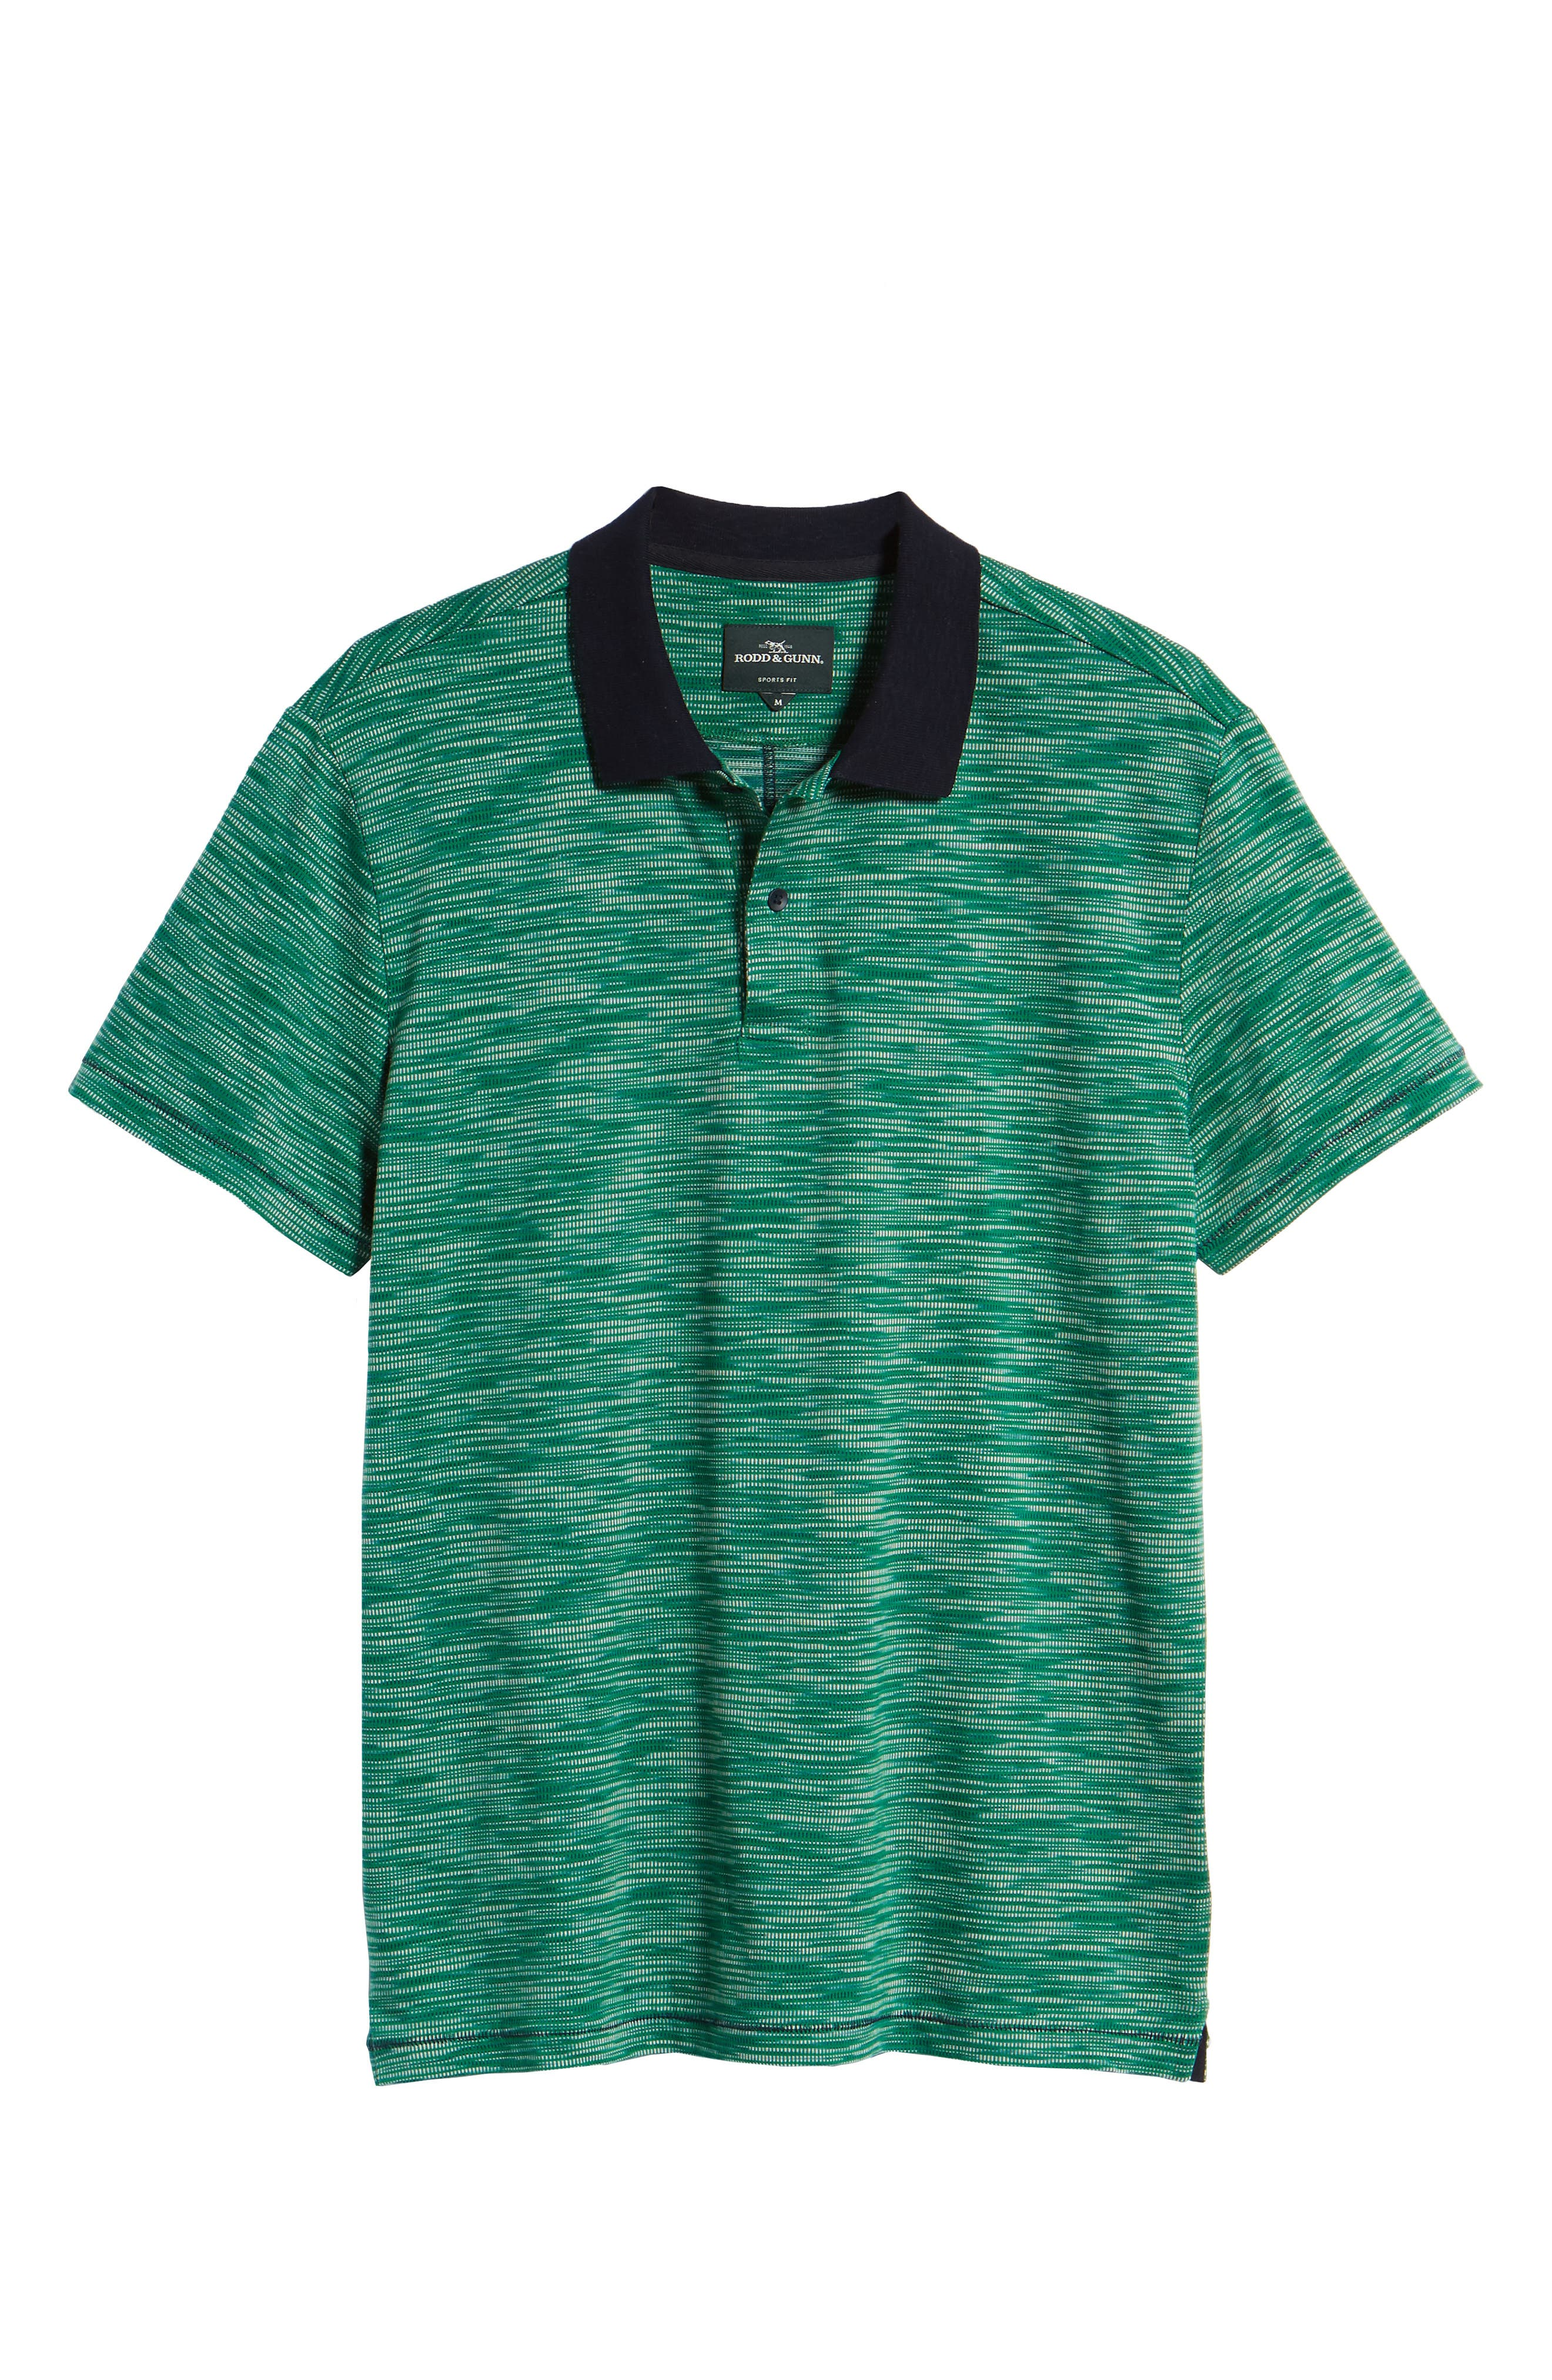 Tay Street Regular Fit Polo,                             Alternate thumbnail 6, color,                             Emerald